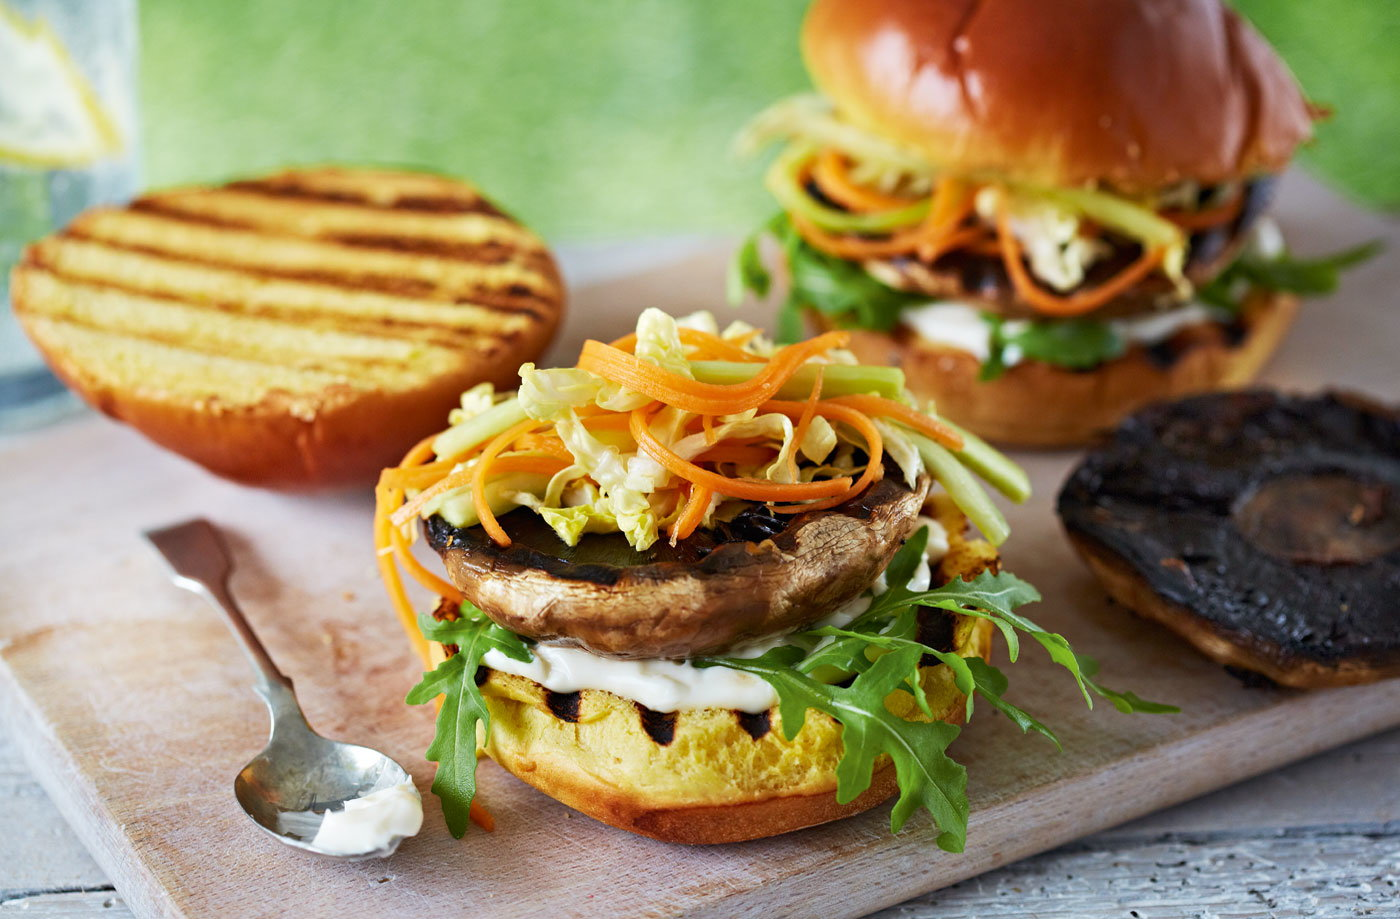 Mushroom burgers with Asian-style slaw recipe